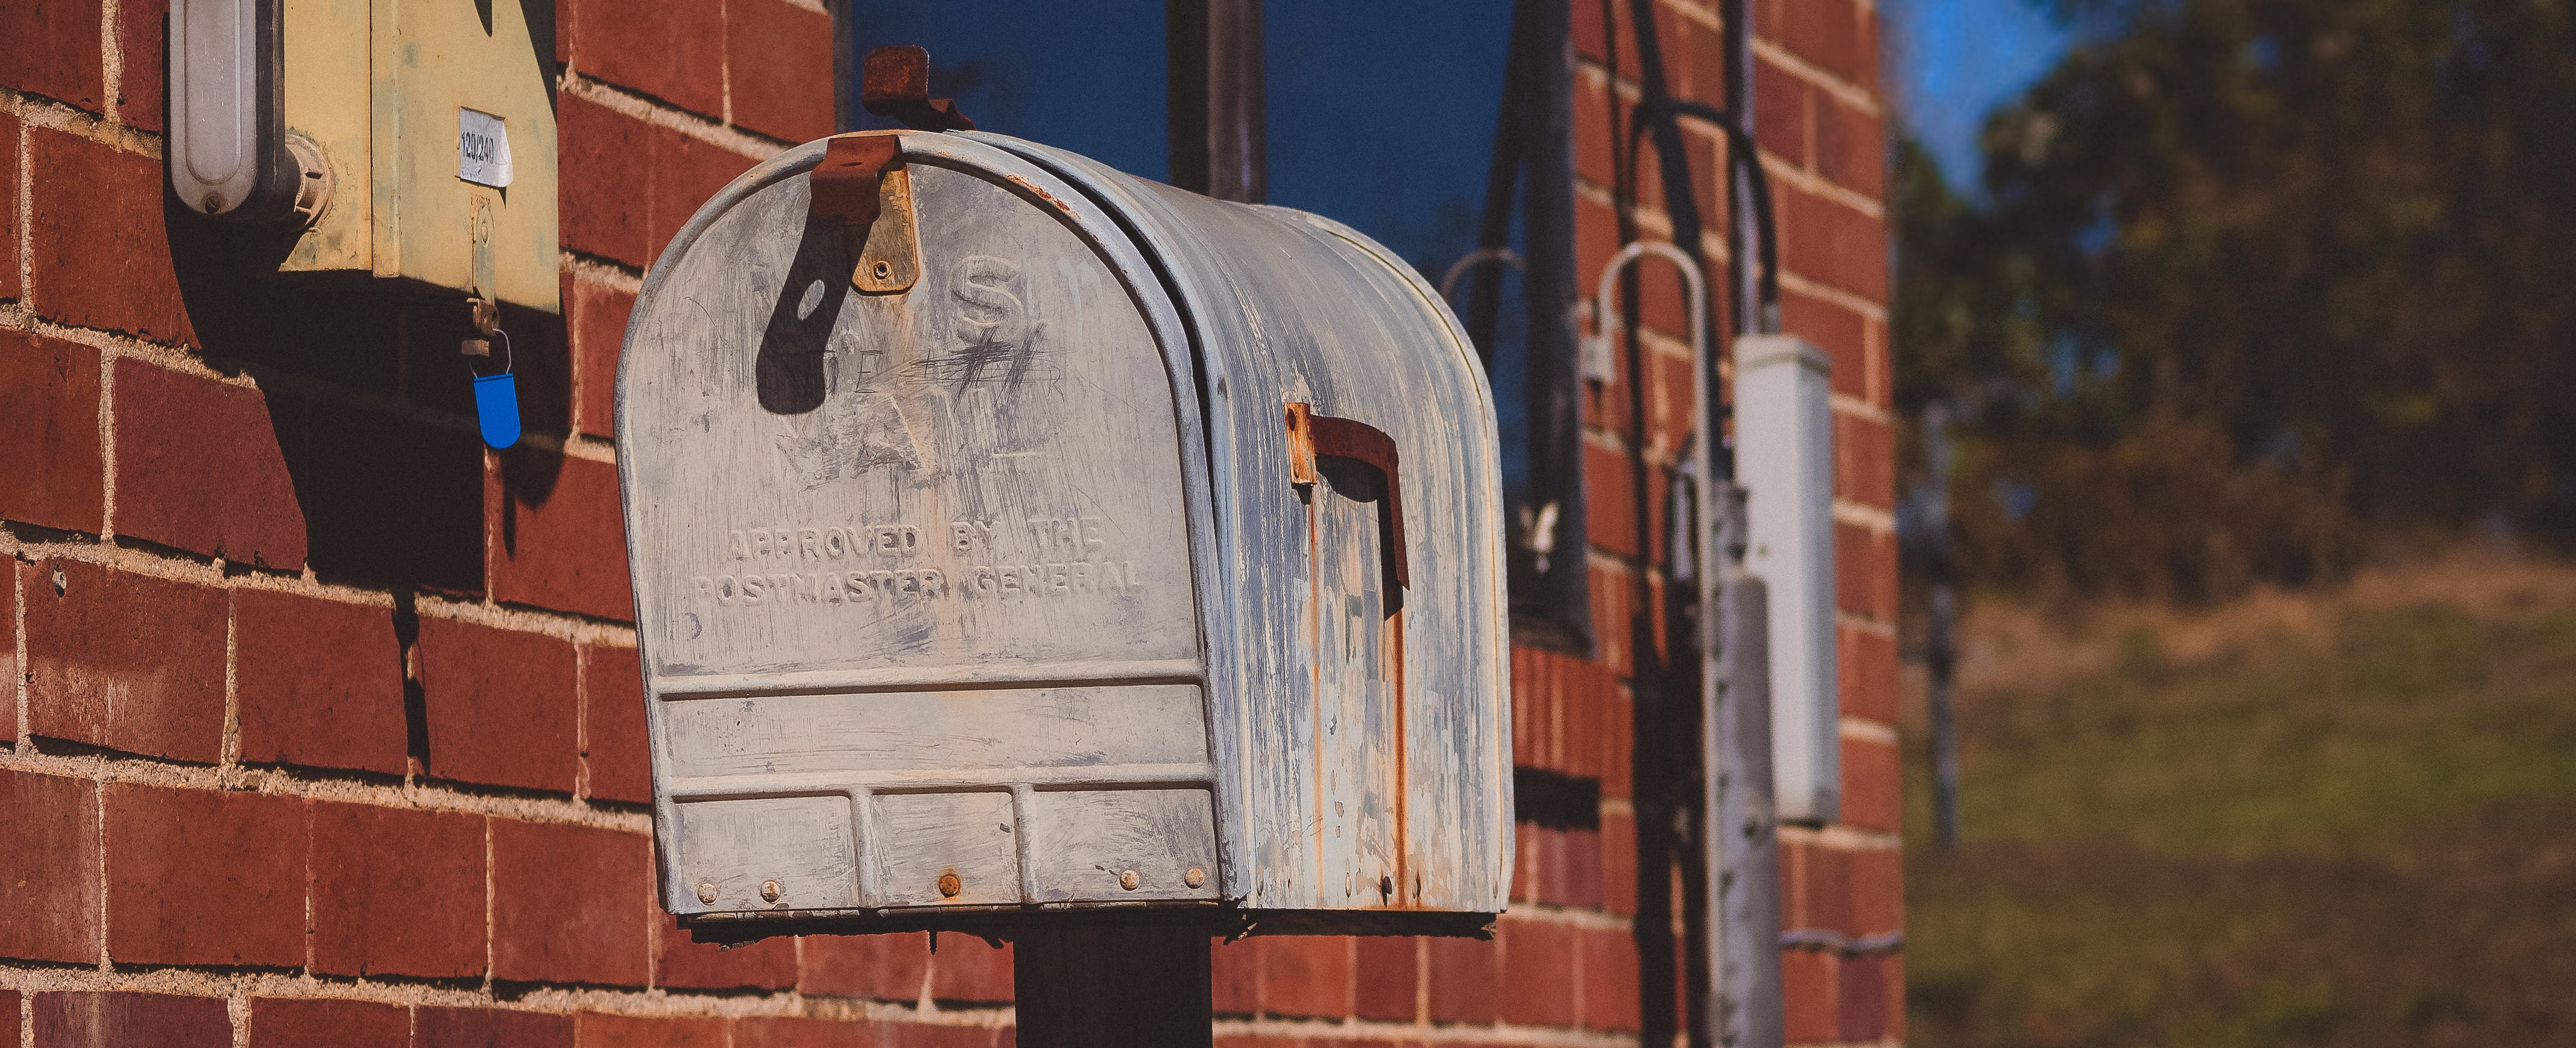 Free stock photo of antique mailbox, mail, mailbox, old mailbox